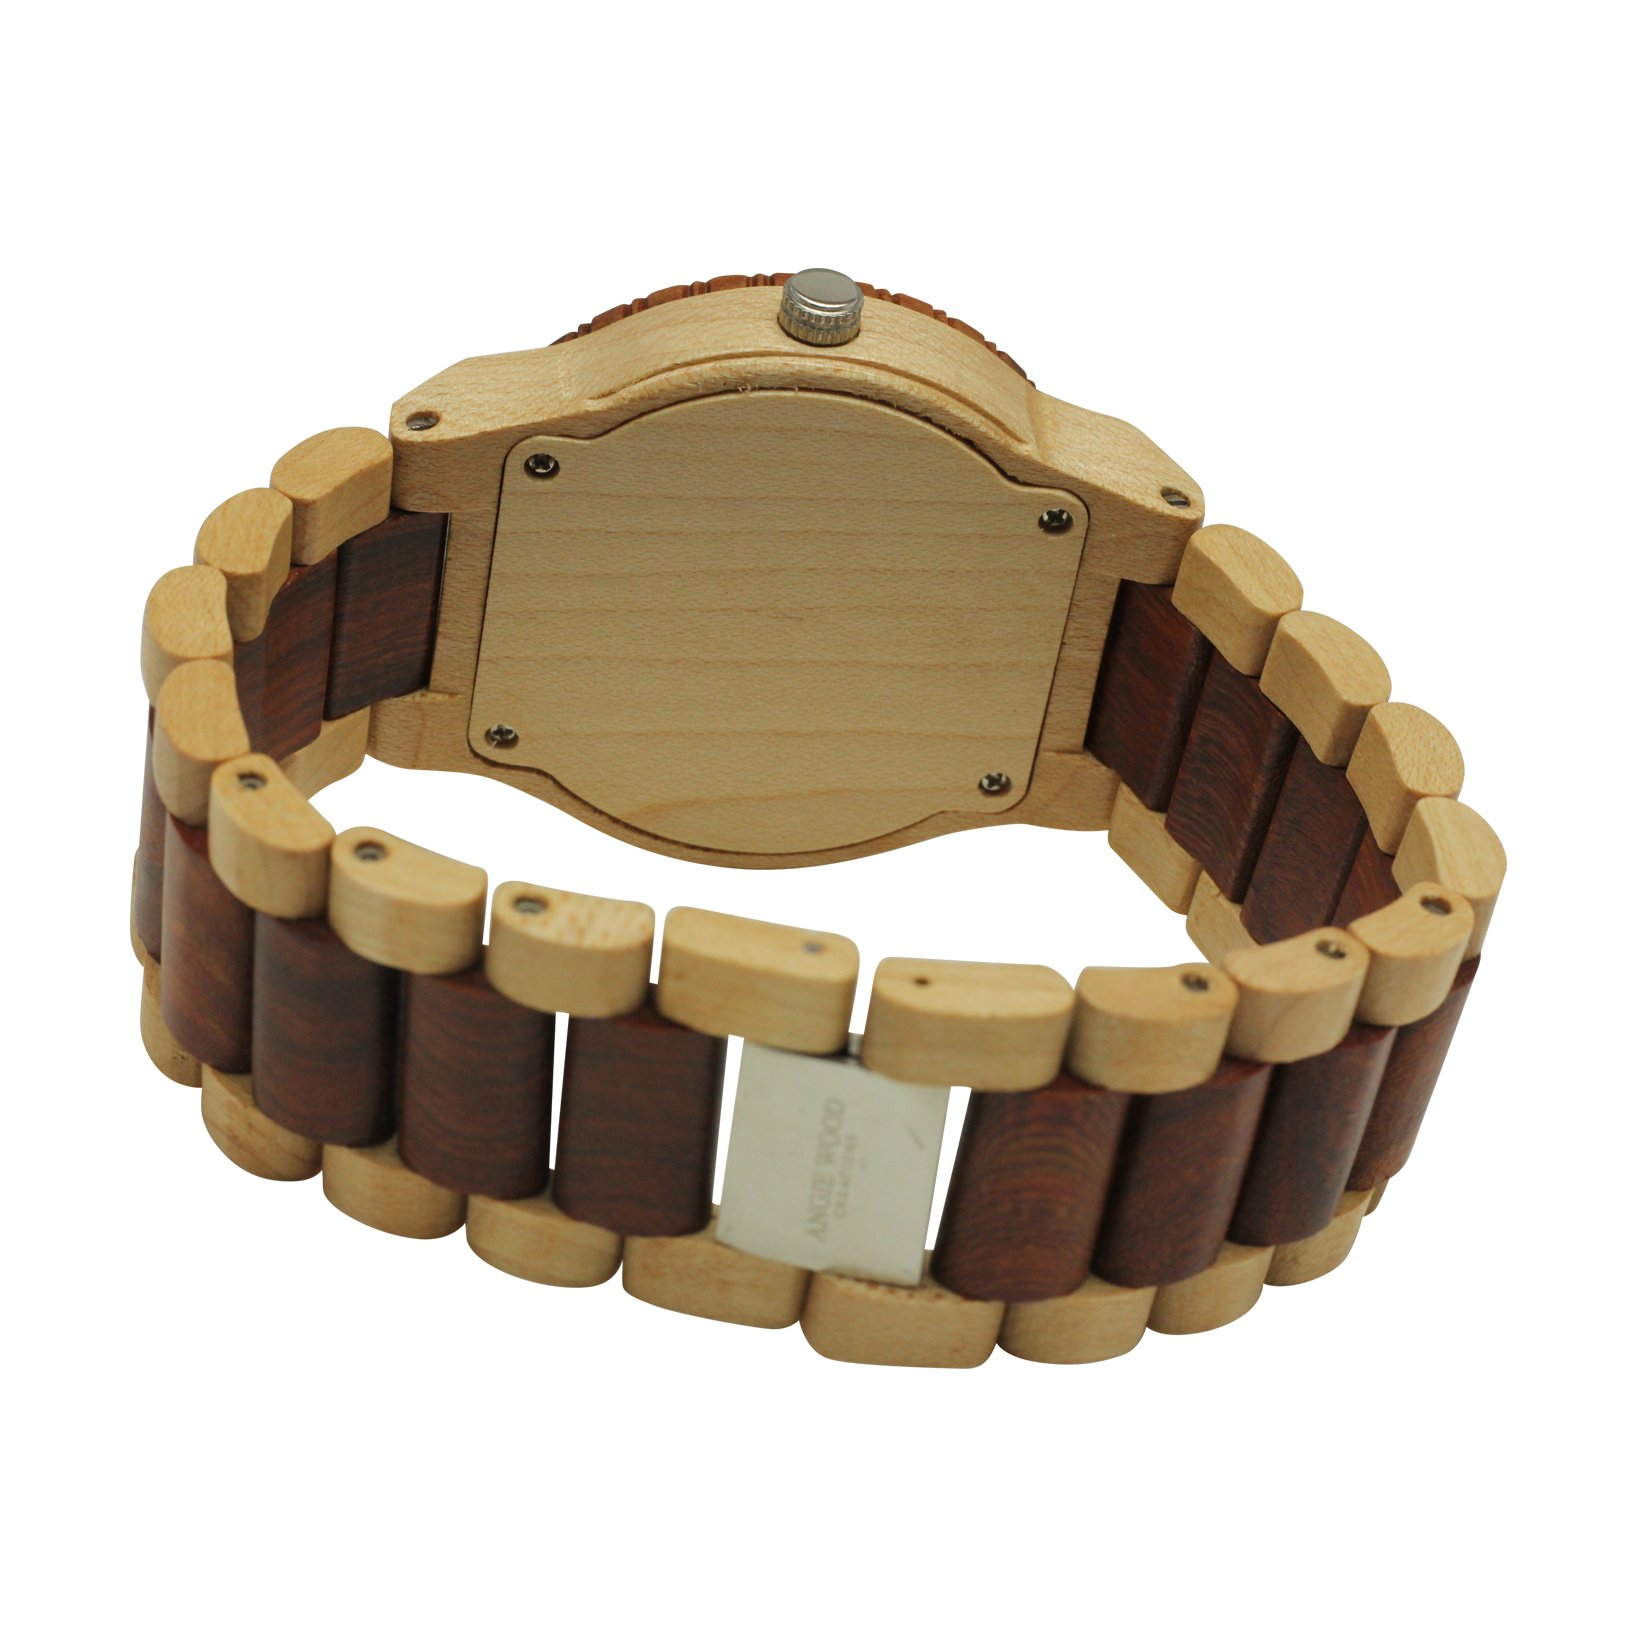 Angie Wood Creations Maple Men's Watch With Maple and Red Sandalwood Bracelet - image 1 de 7